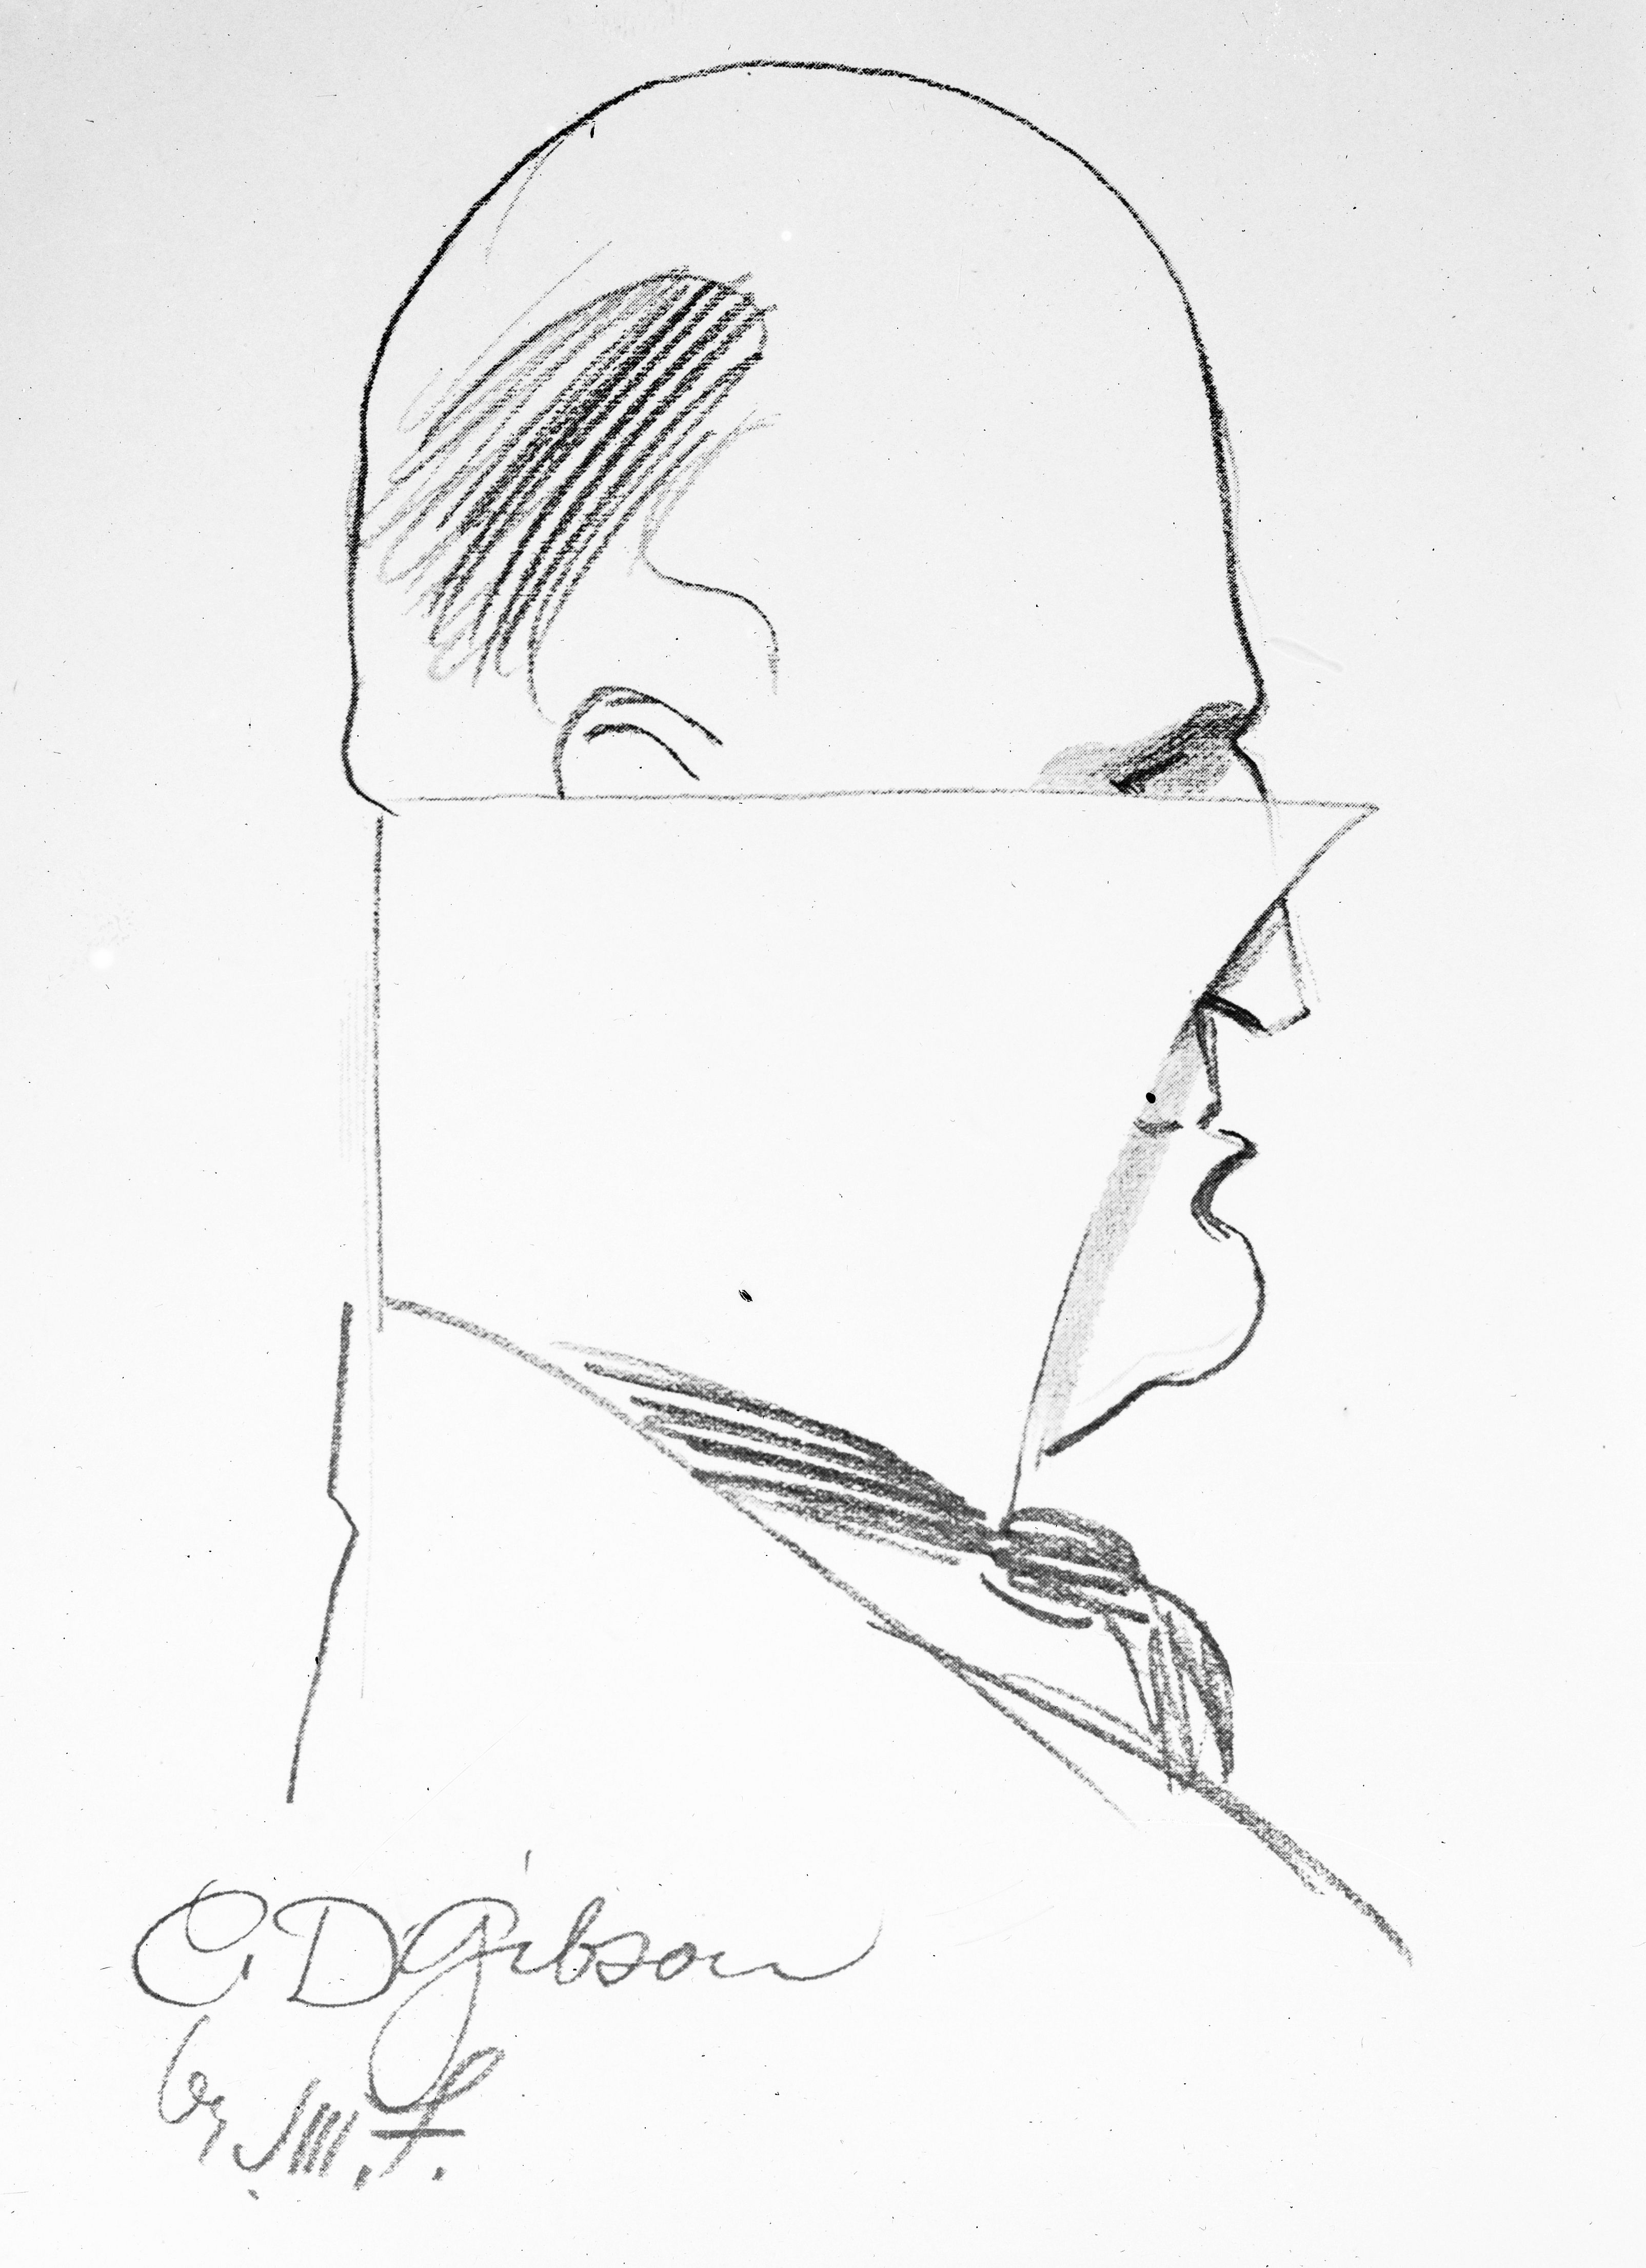 Charles Dana Gibson by James Montgomery Flagg